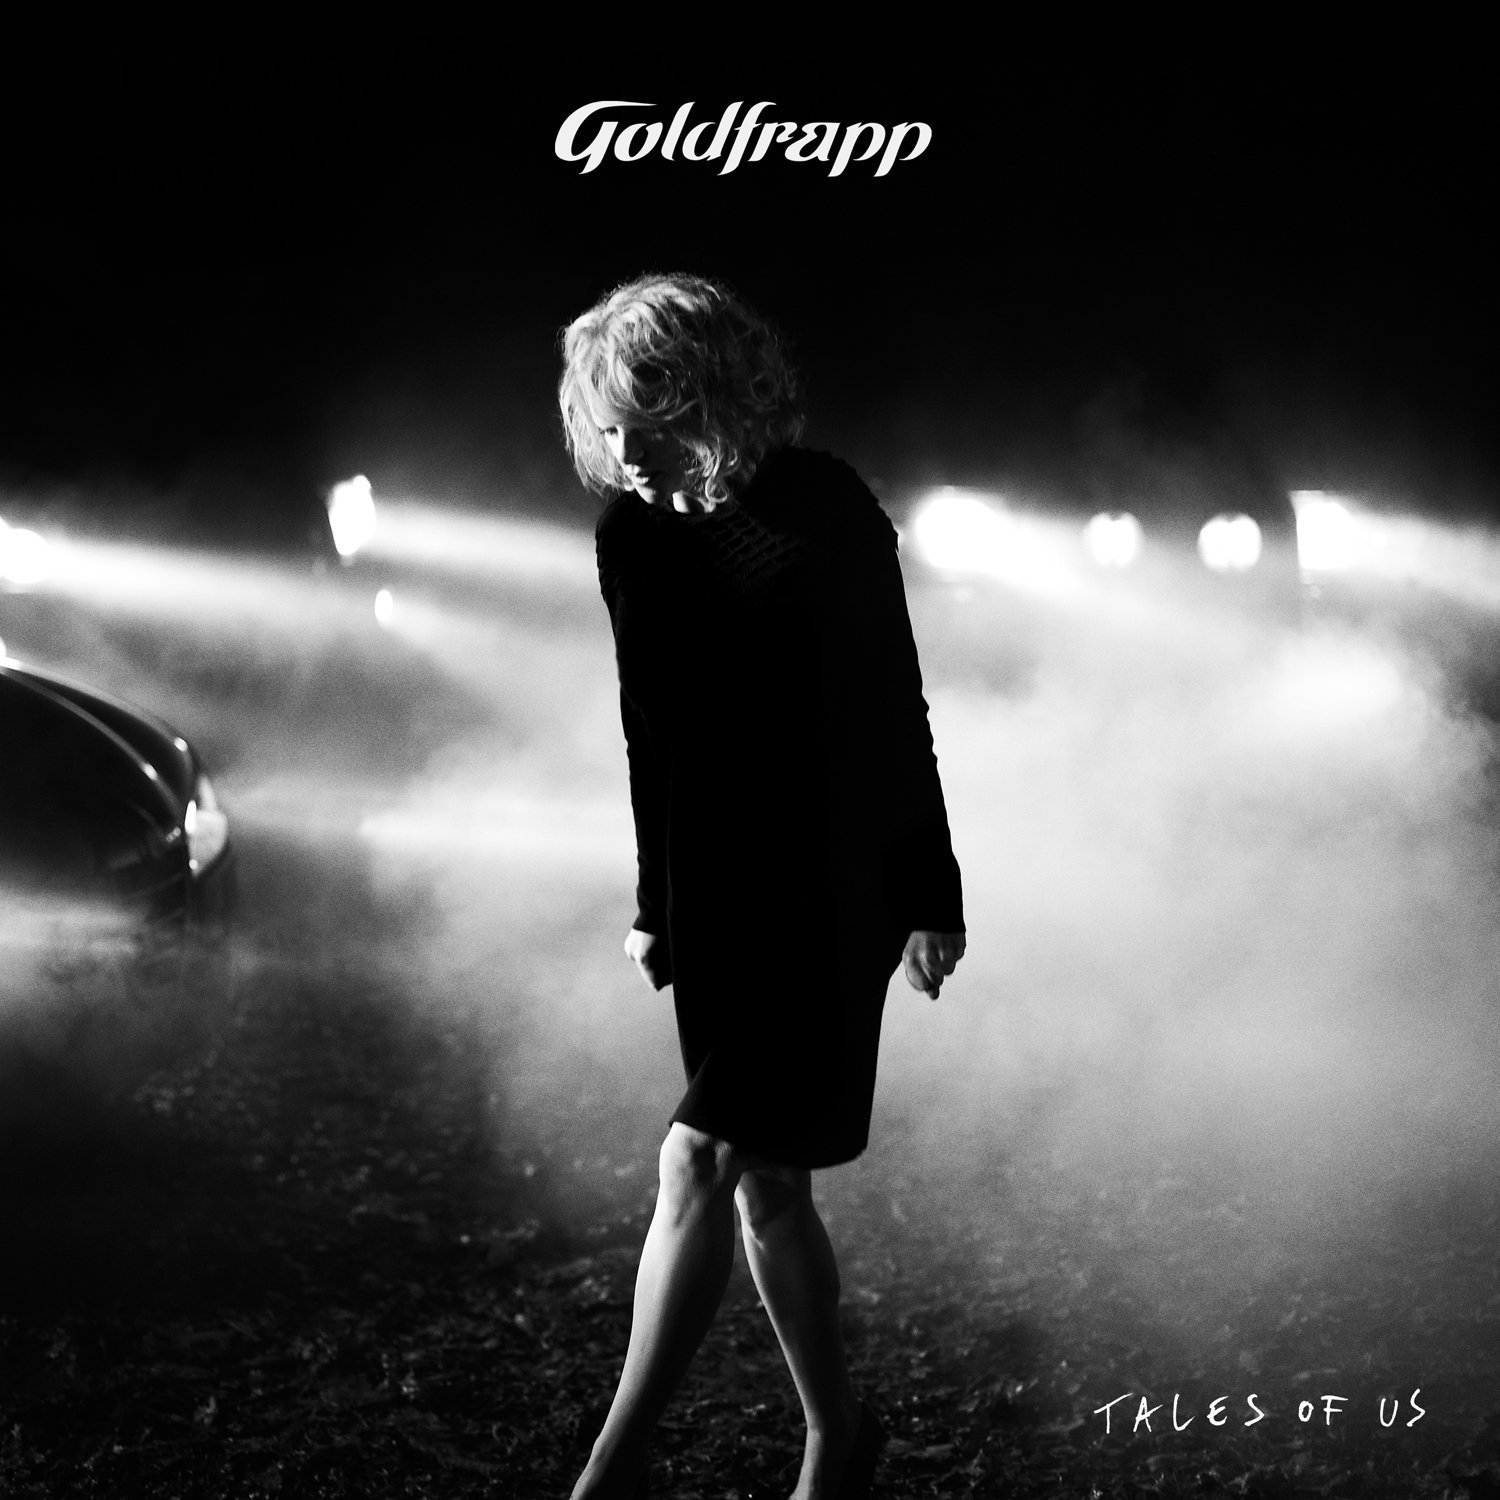 boom music reviews - Tales of Us by Goldfrapp